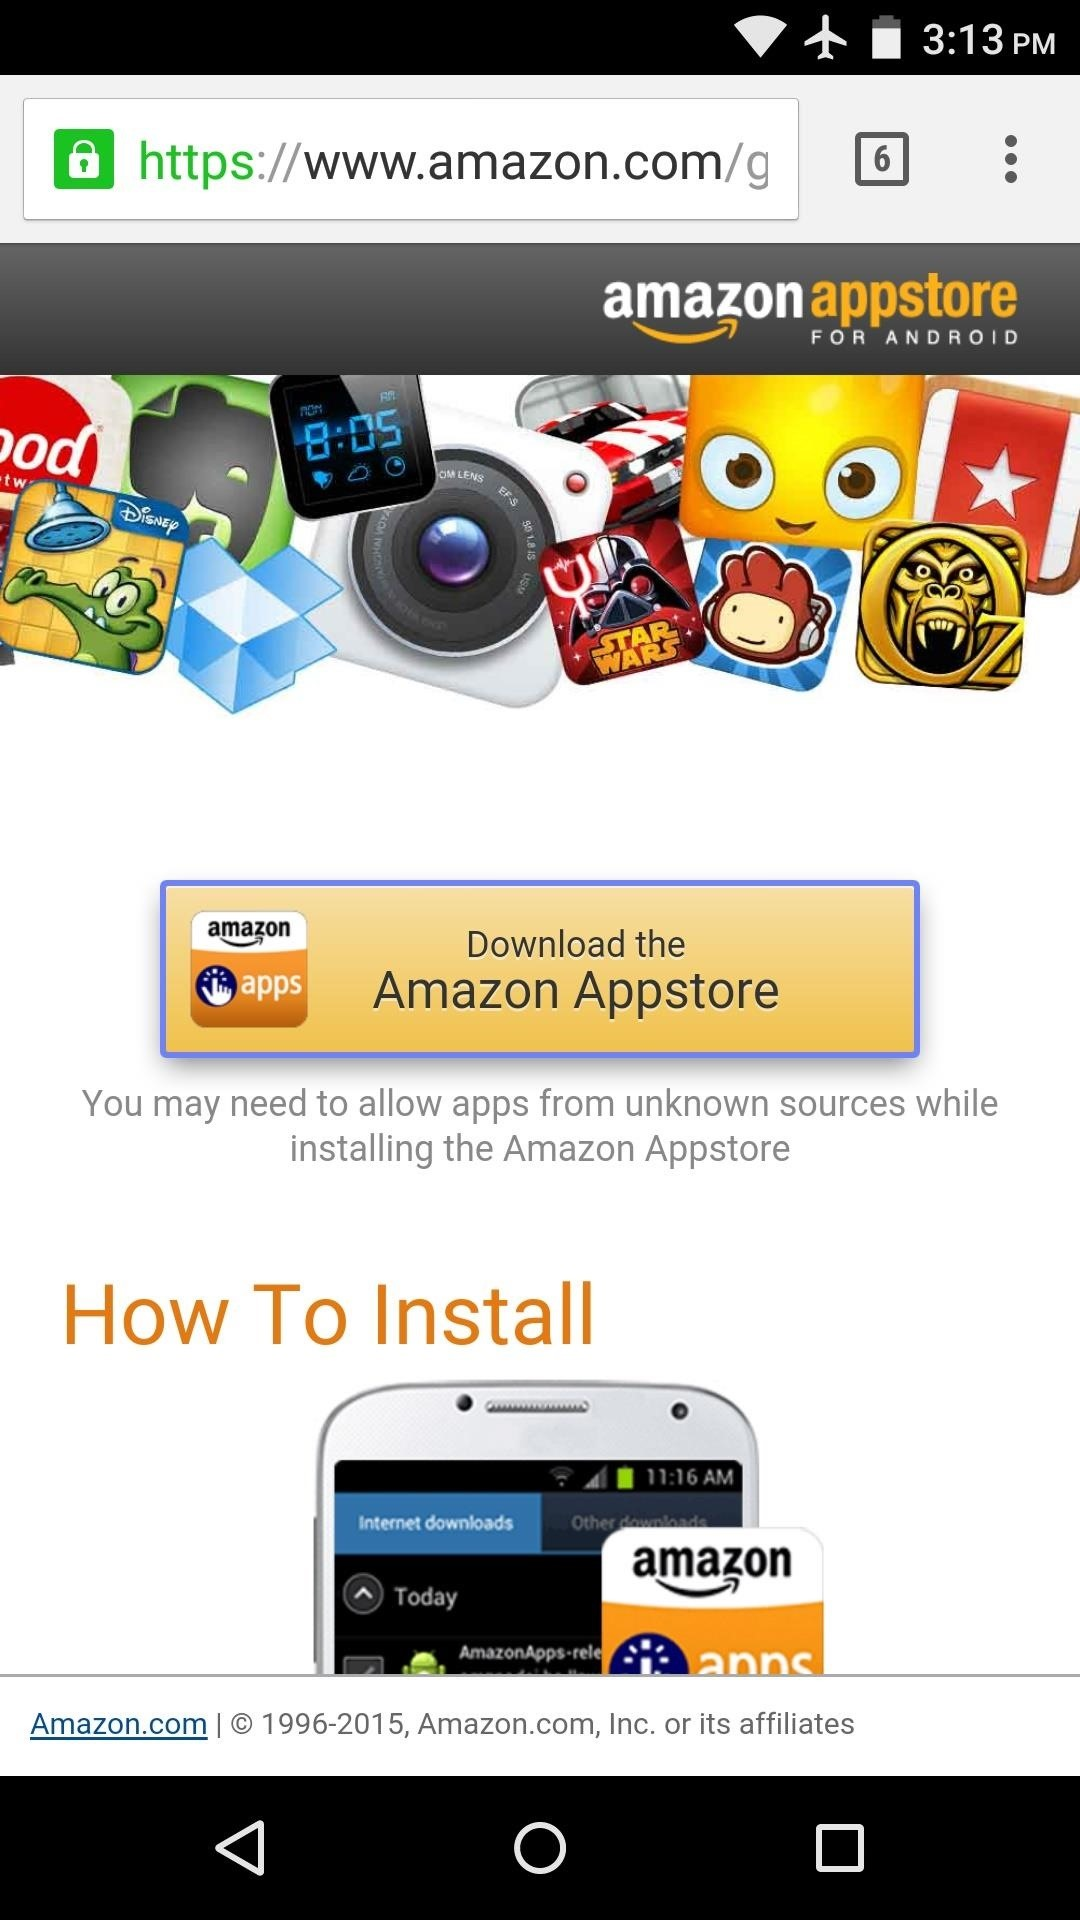 Android Basics: How to Install Apps